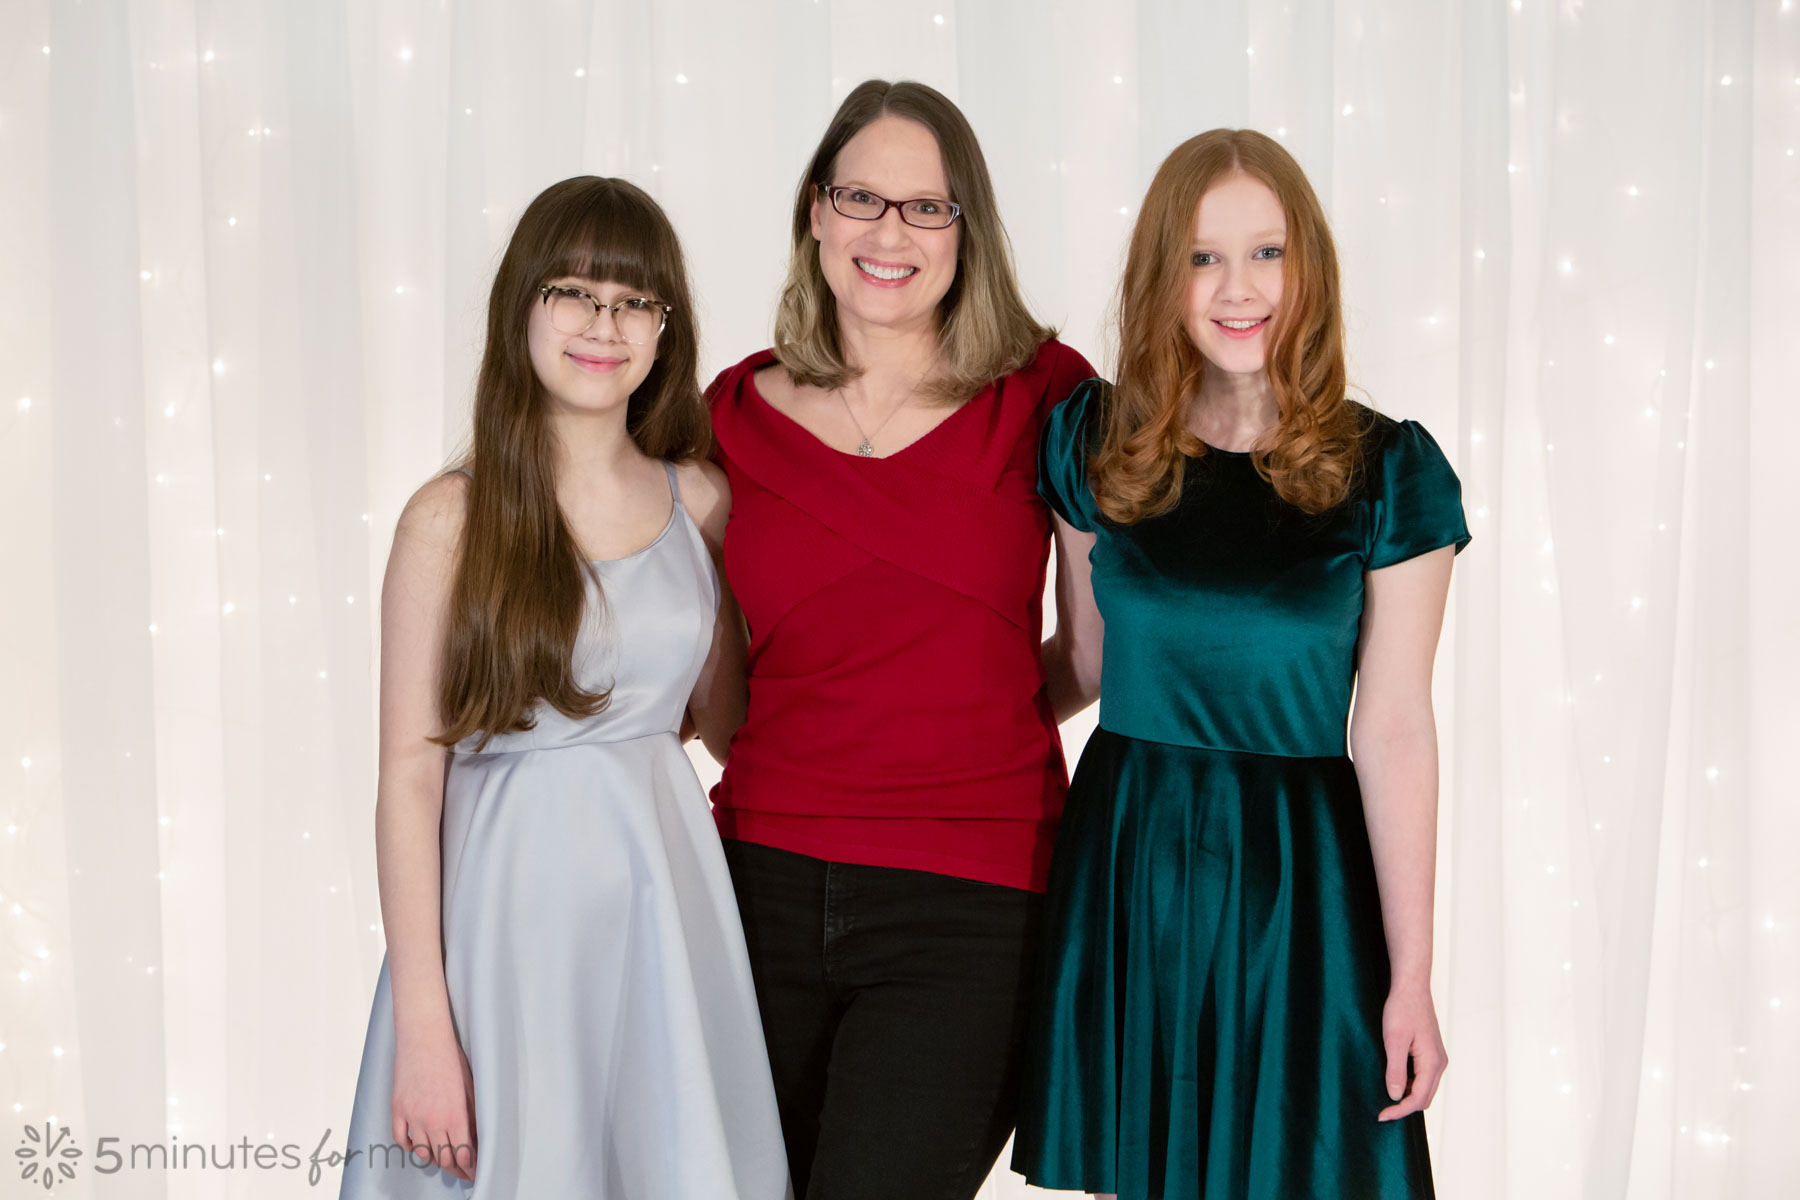 Susan with her daughters